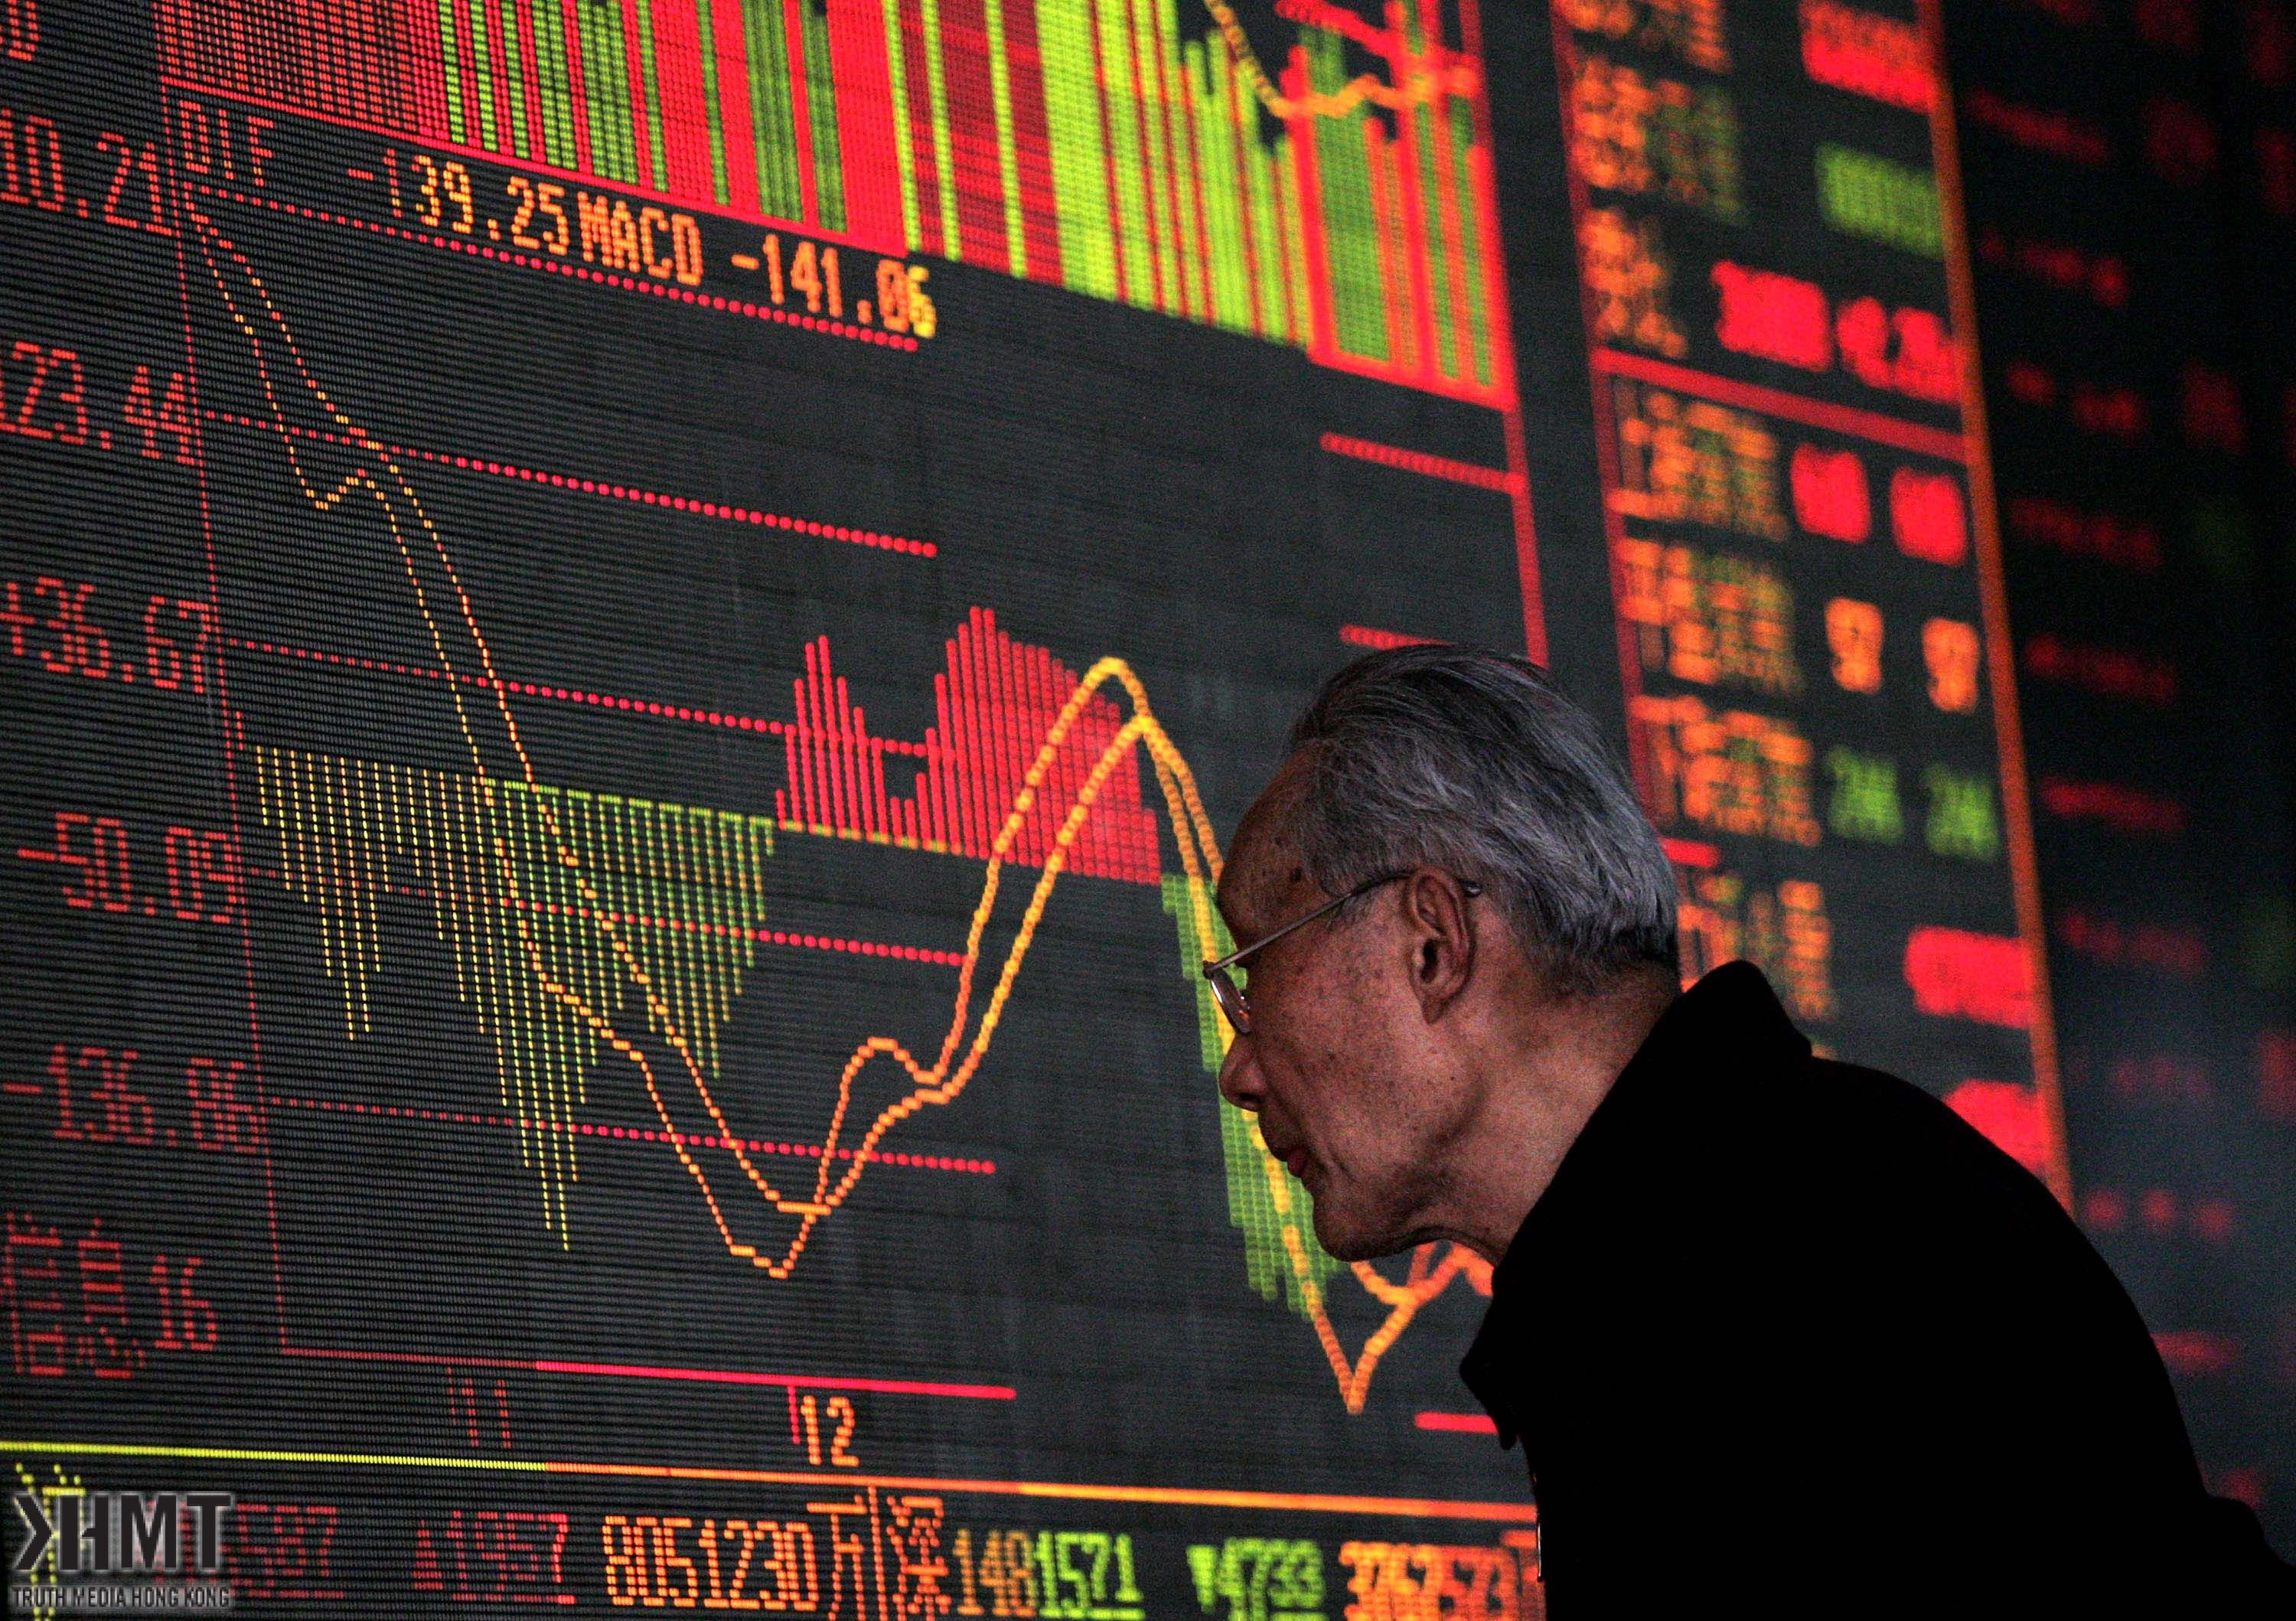 Chinese Stocks Down On Announcement Of Inflation Data